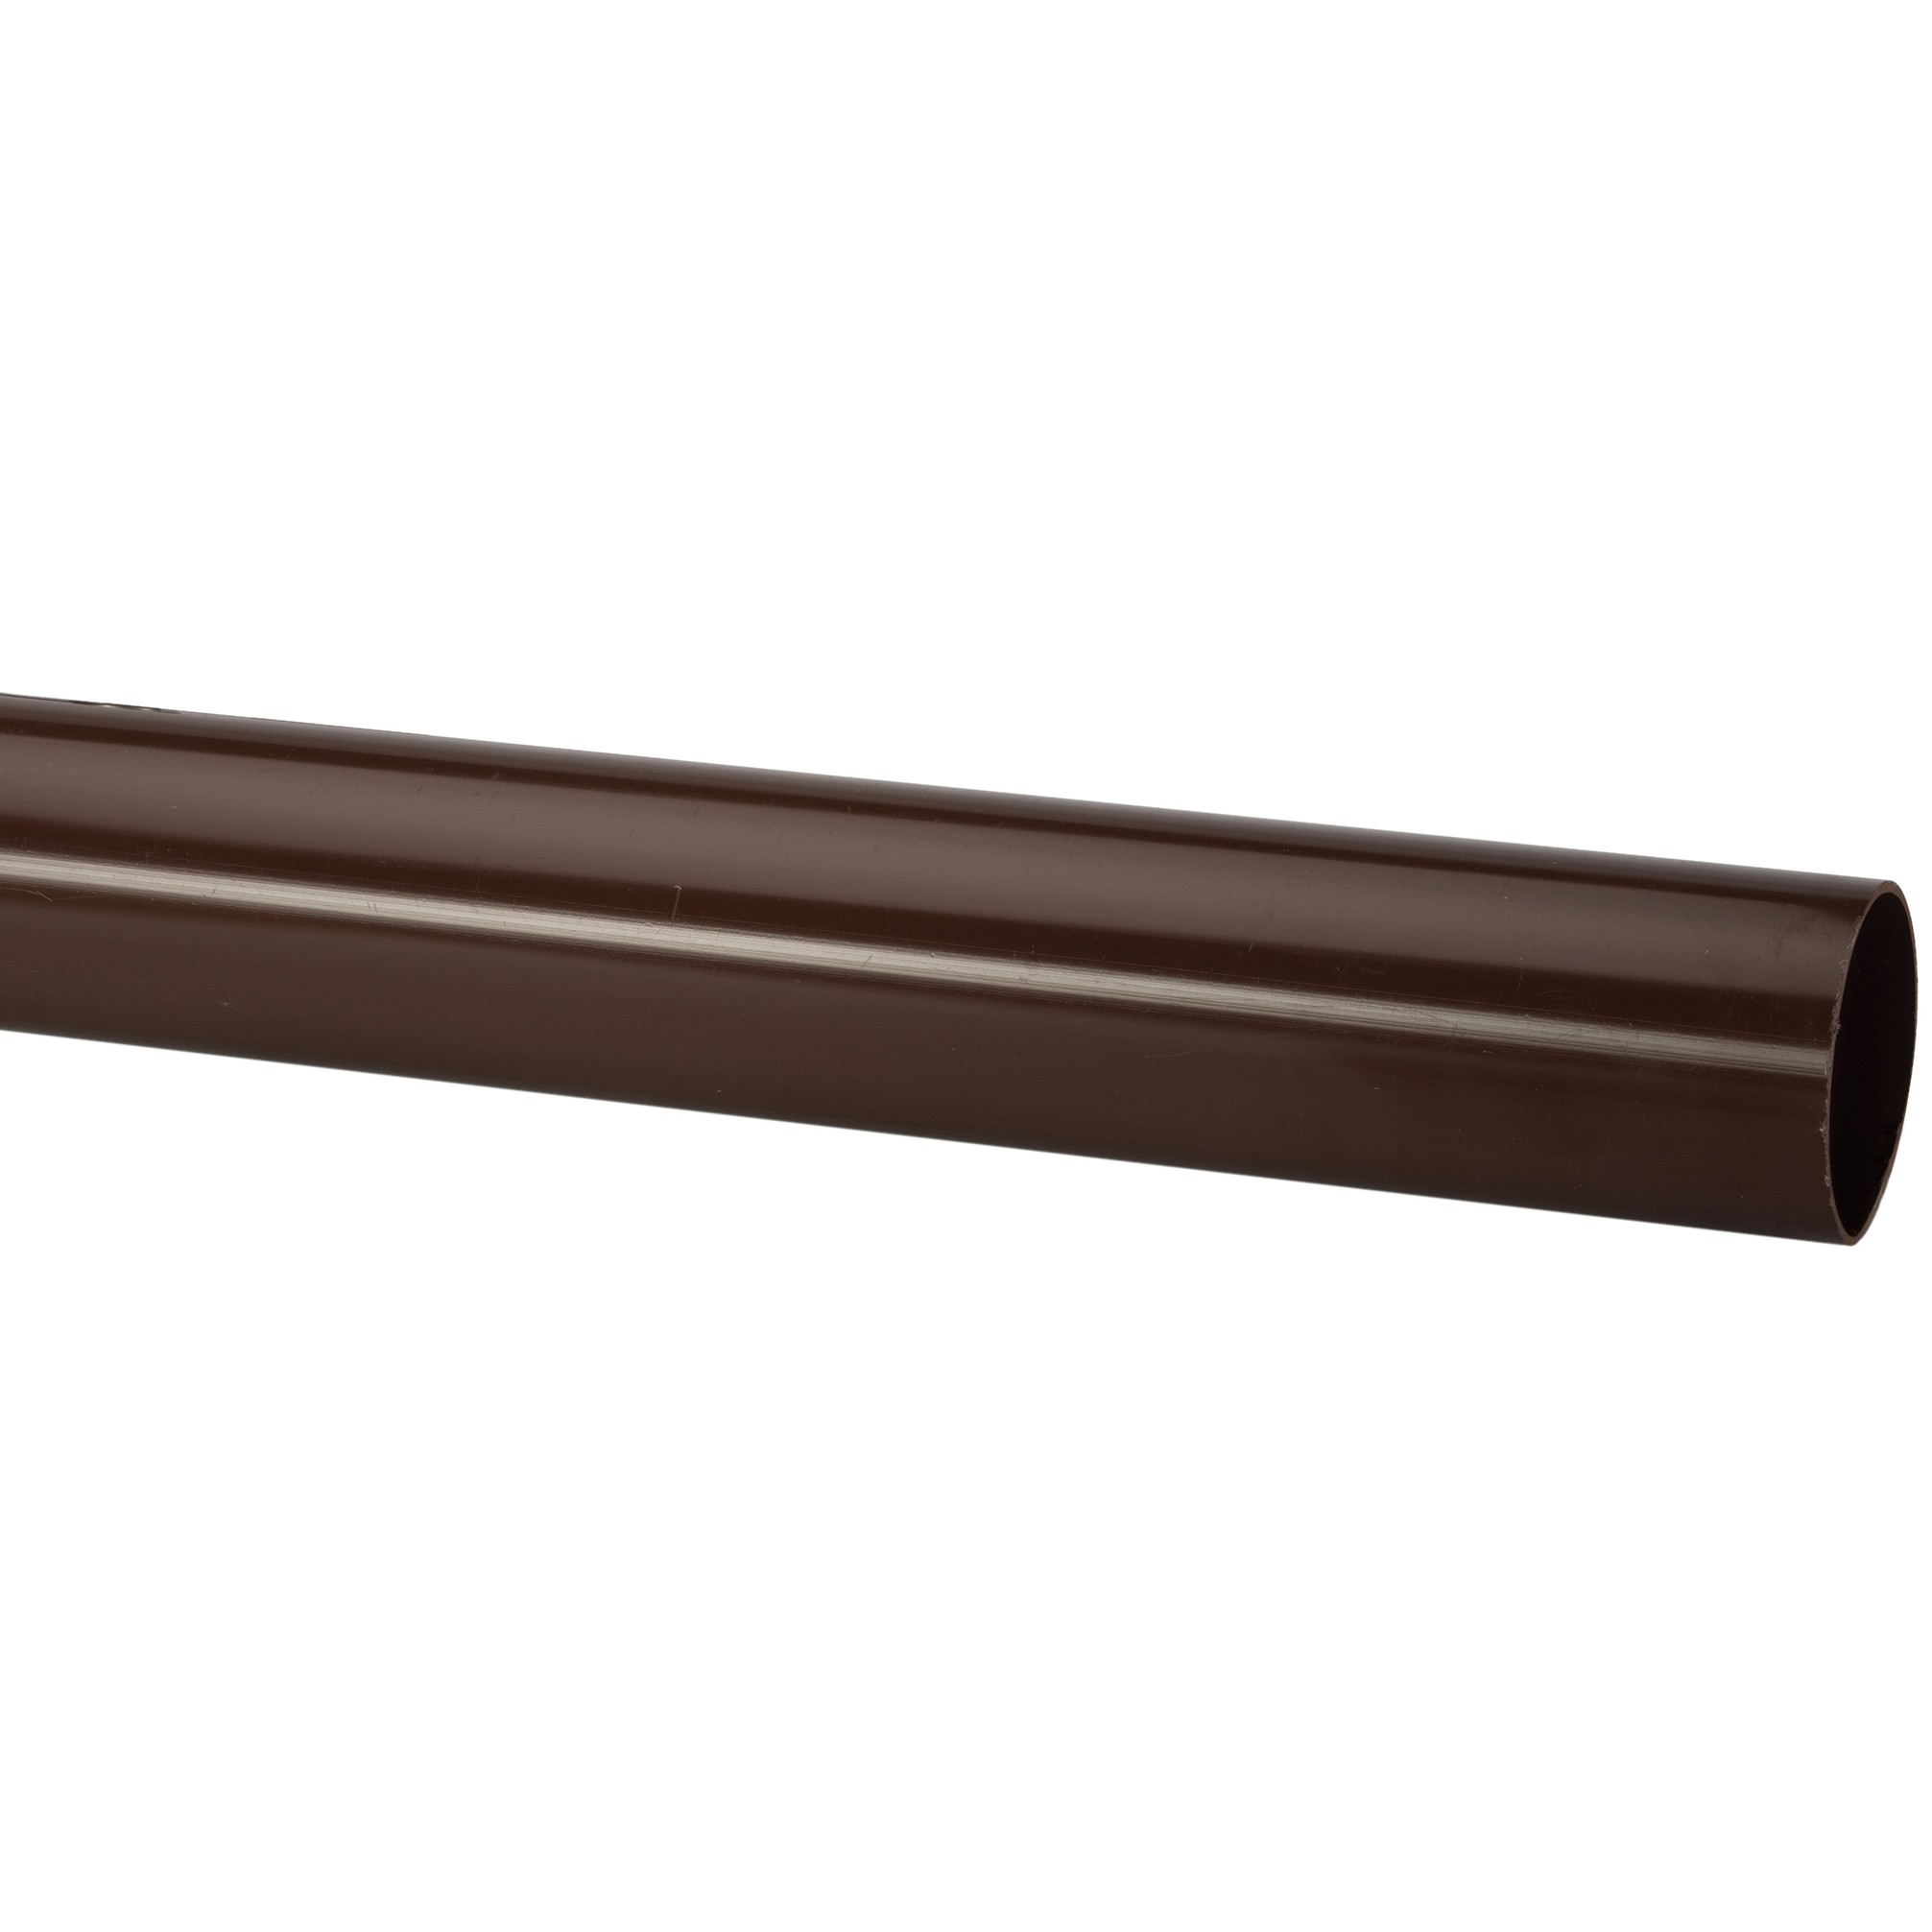 Polypipe 68mm Round Down Pipe (1.25 metre x 2) - Brown